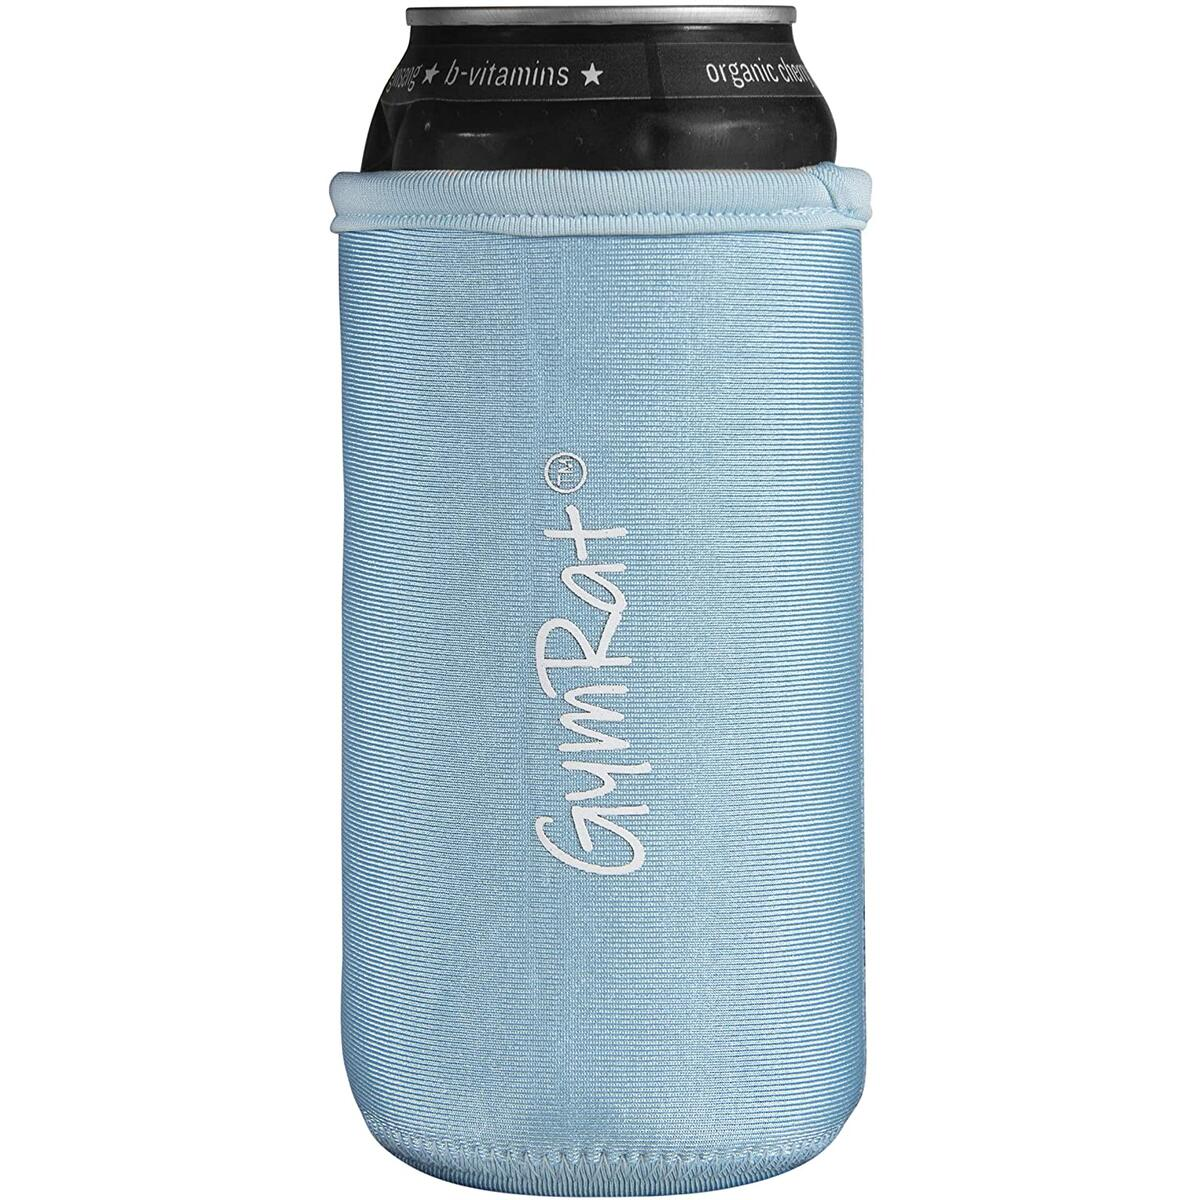 ymRat Tall Can Cooler for Cans & Bottles - 16 oz and 20 oz Slim Insulated Neoprene Can Sleeve Keeps Drinks Cold - Reinforced Stitching Perfect for Tall Drinks - Color Blue